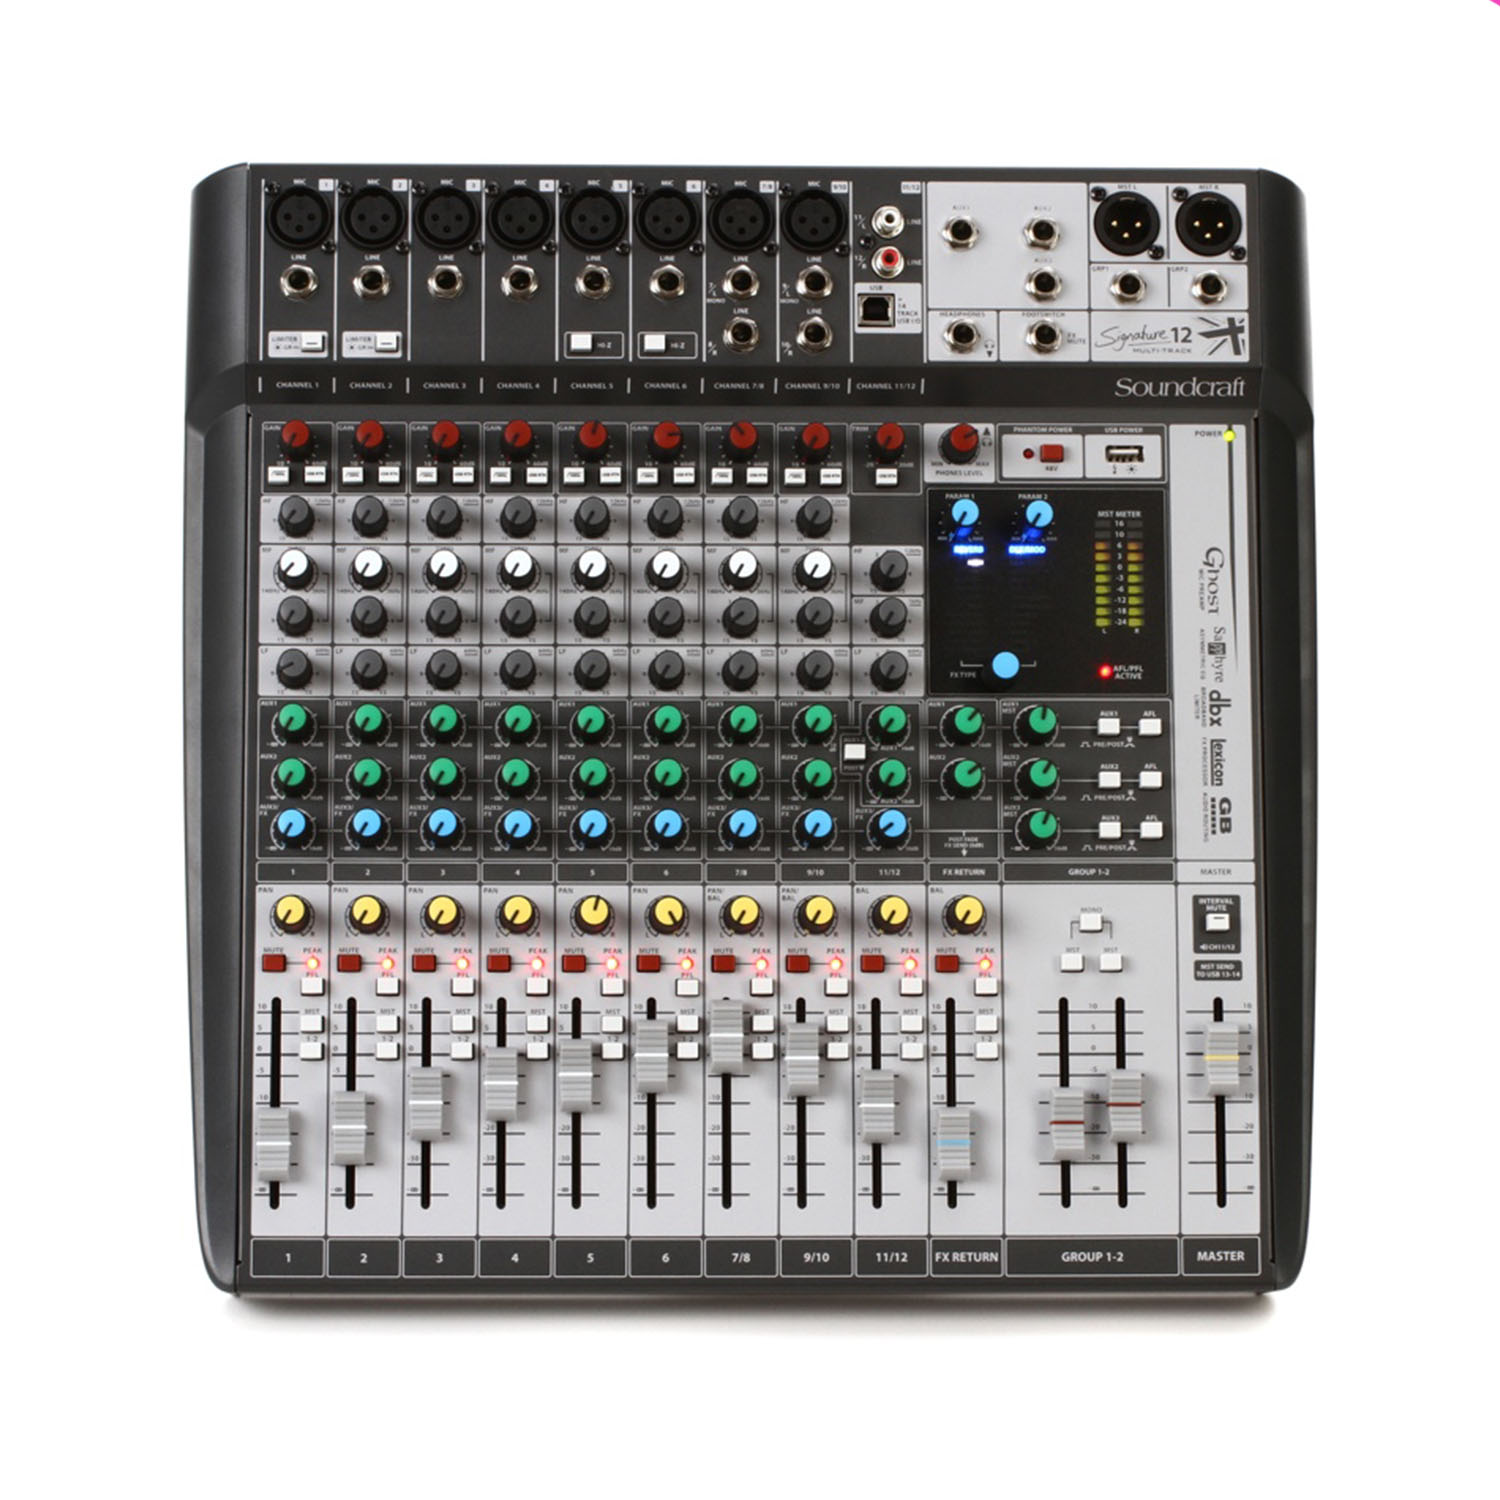 Soundcraft Signature 12 MTK Mixer and Audio Interface with Effects